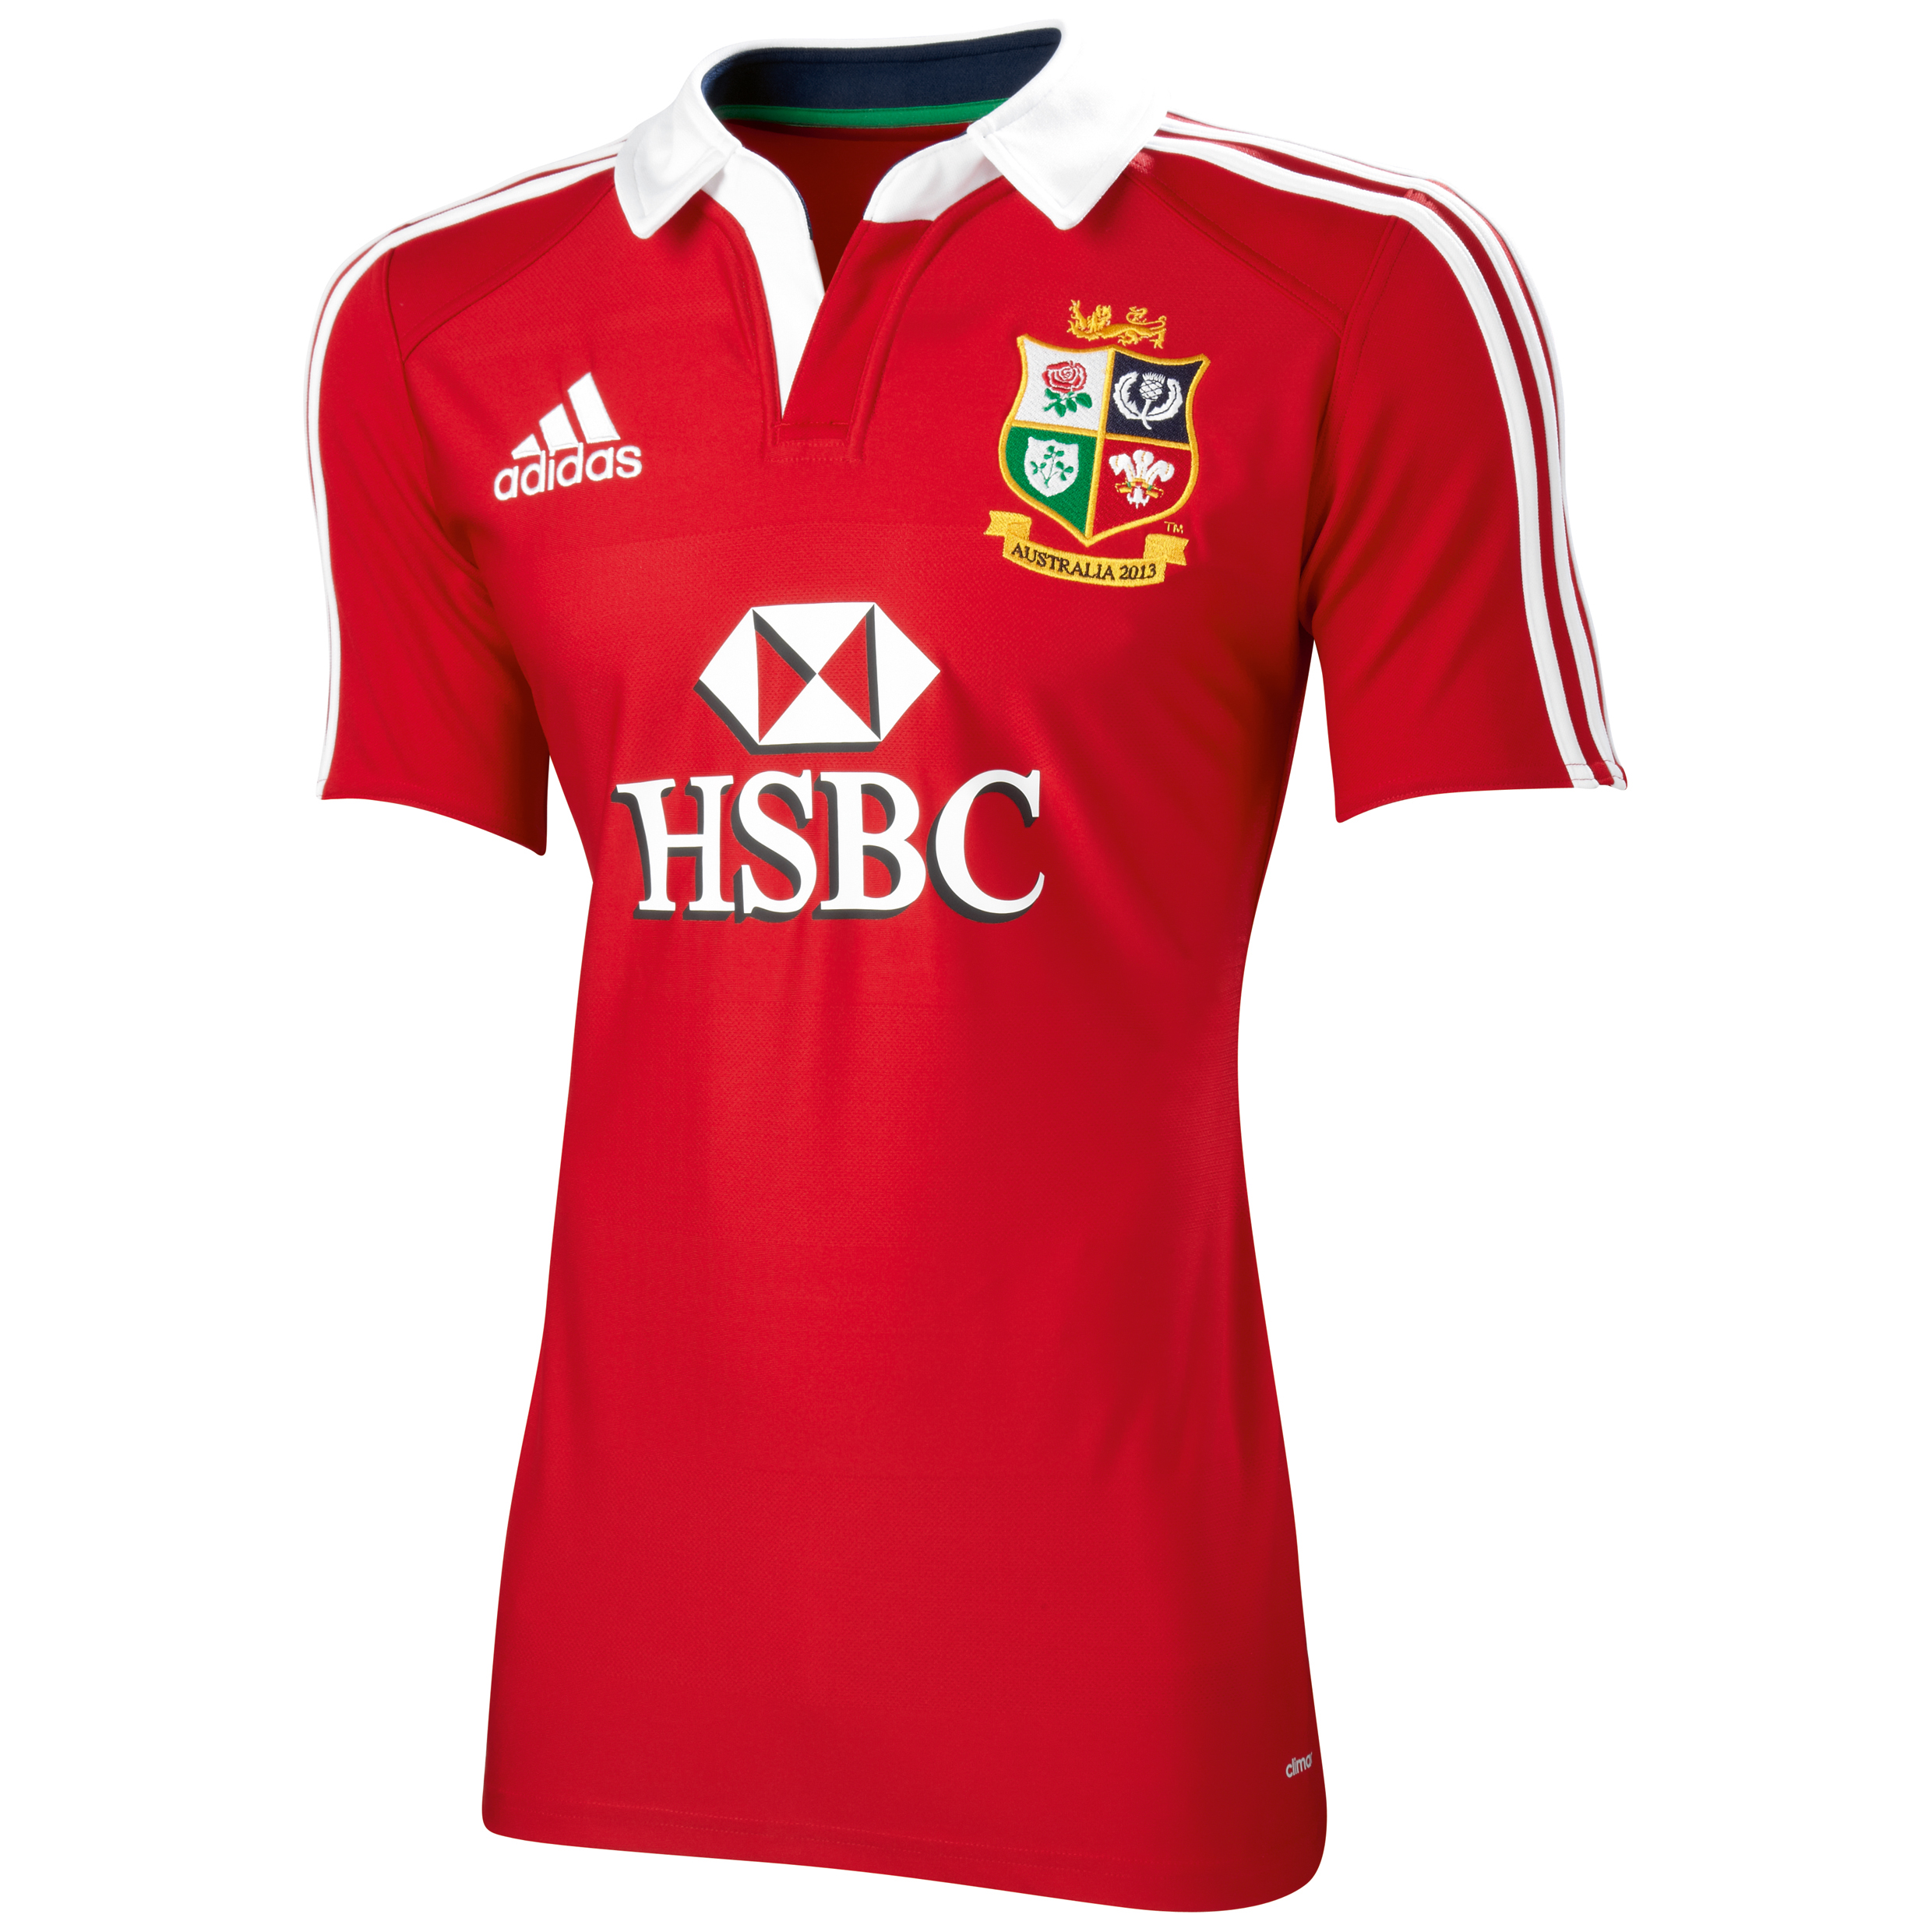 British & Irish Lions Authentic Home Shirt 2013